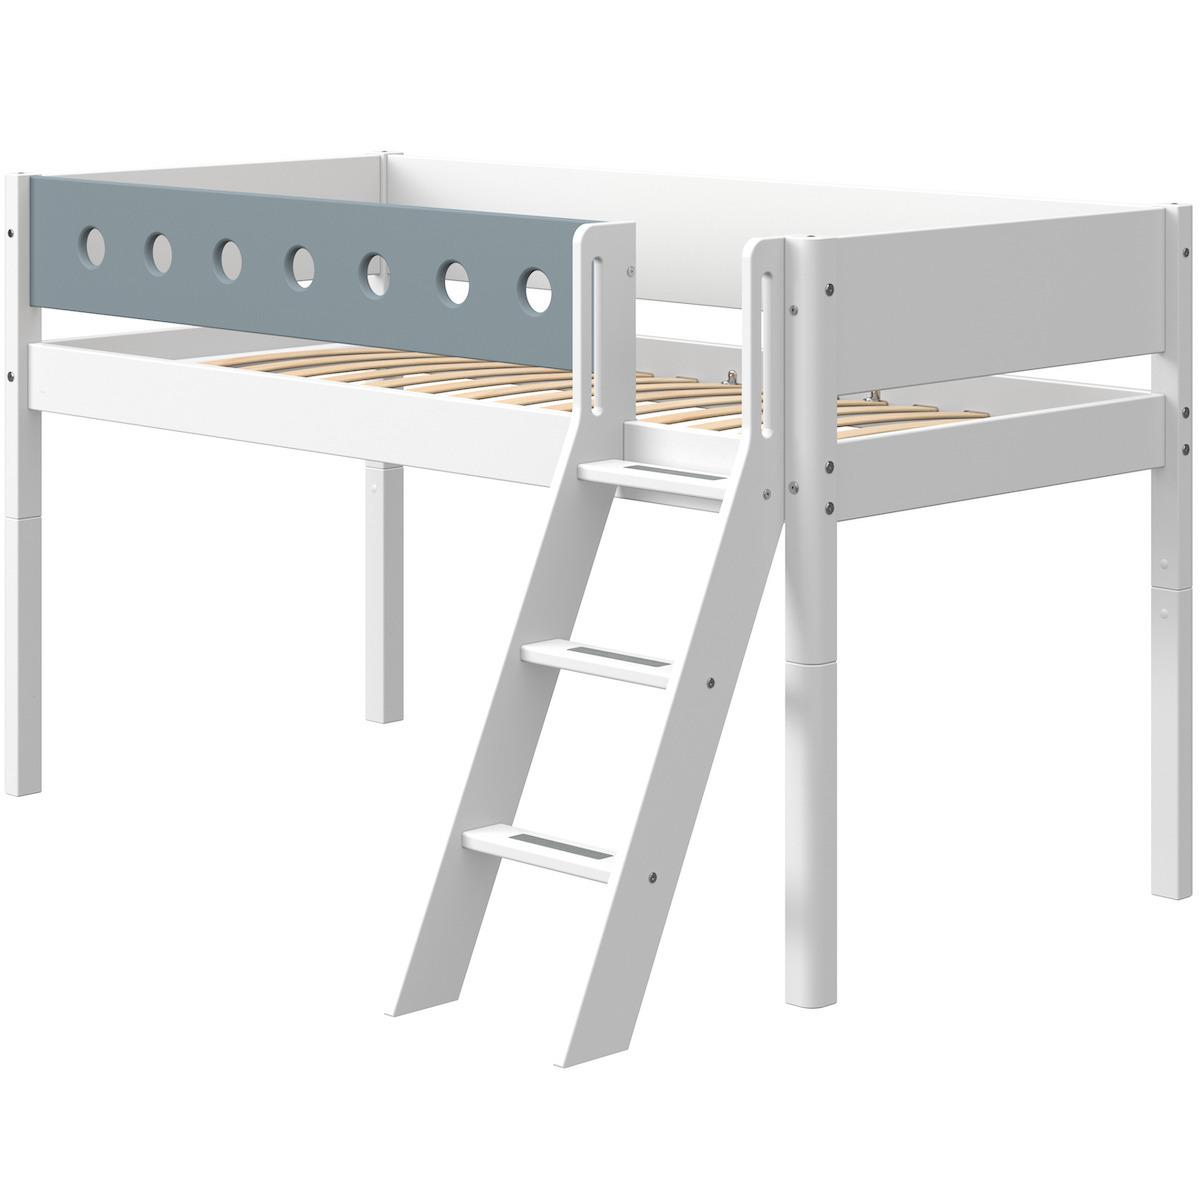 Cama media alta 90x190cm escalera inclinada WHITE Flexa blanco-azul claro